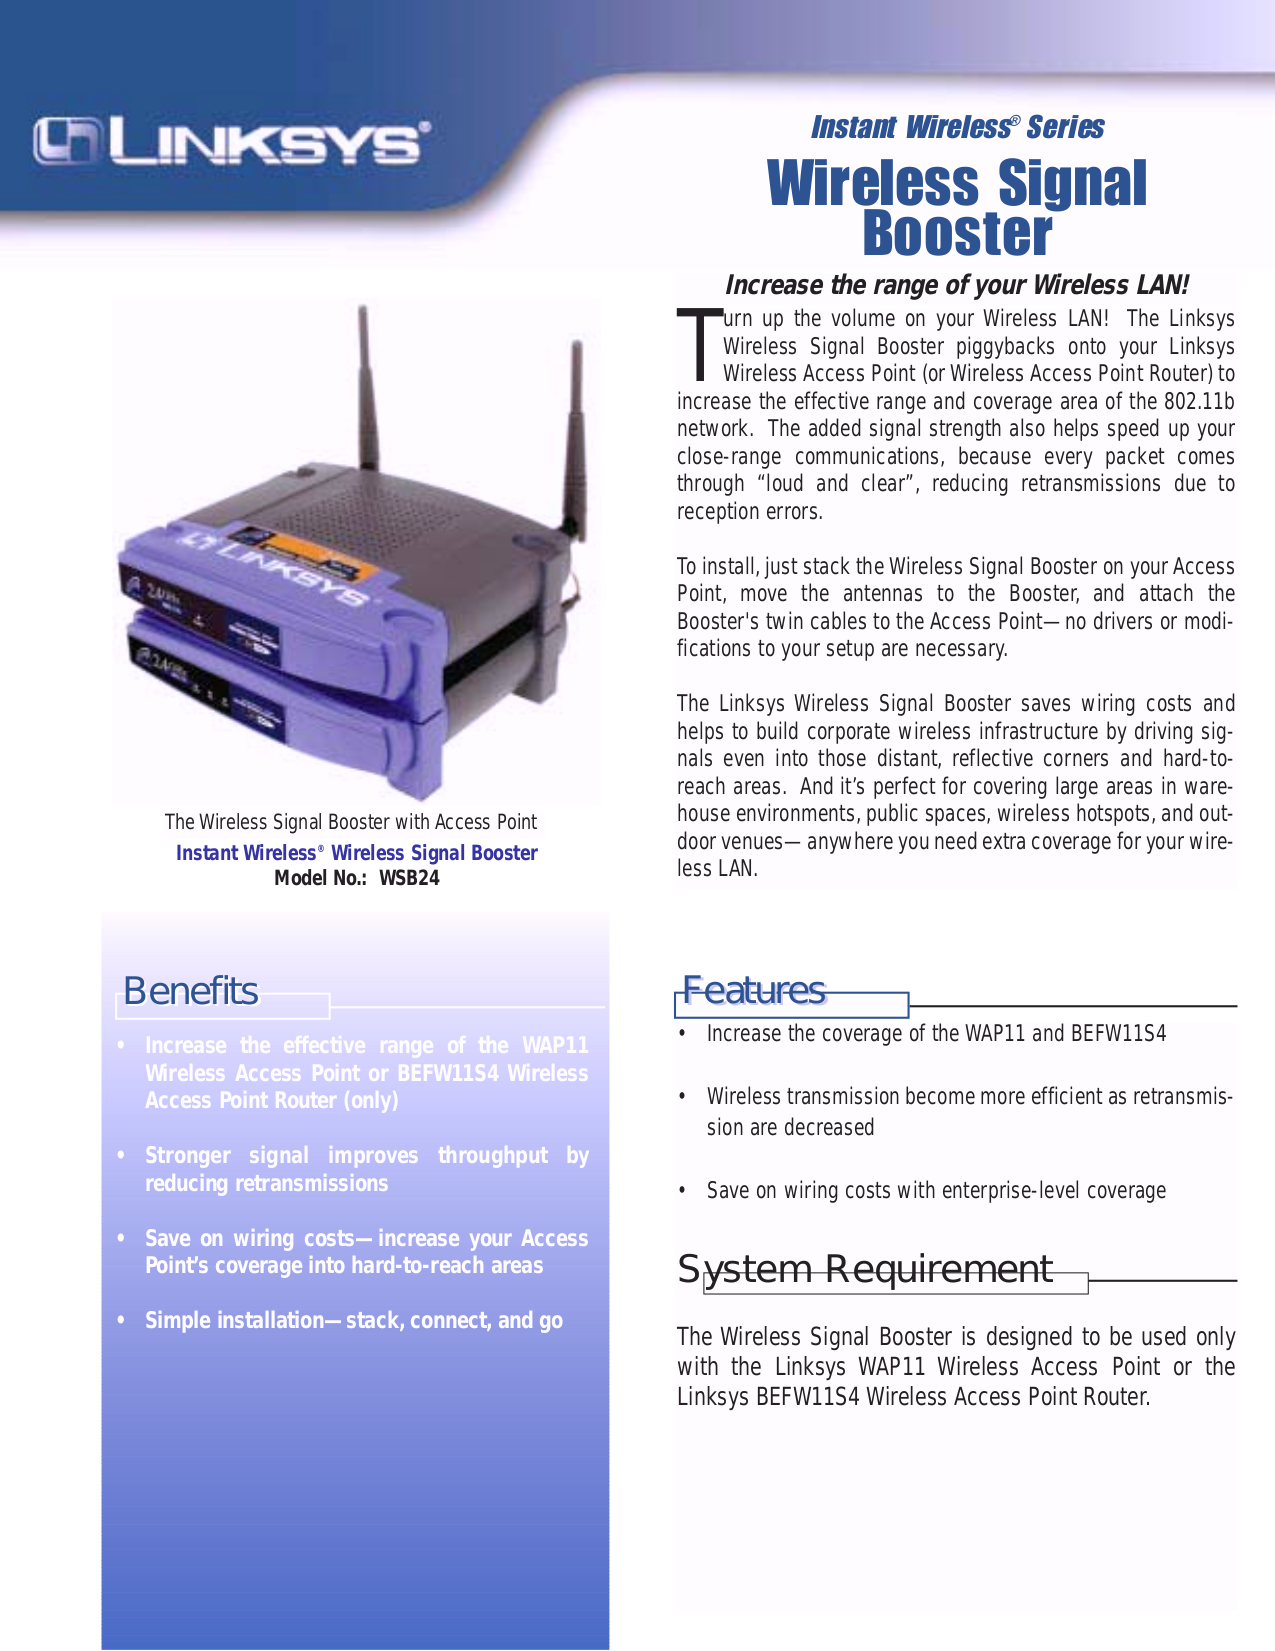 pdf for Linksys Wireless Router BEFW11S4 manual